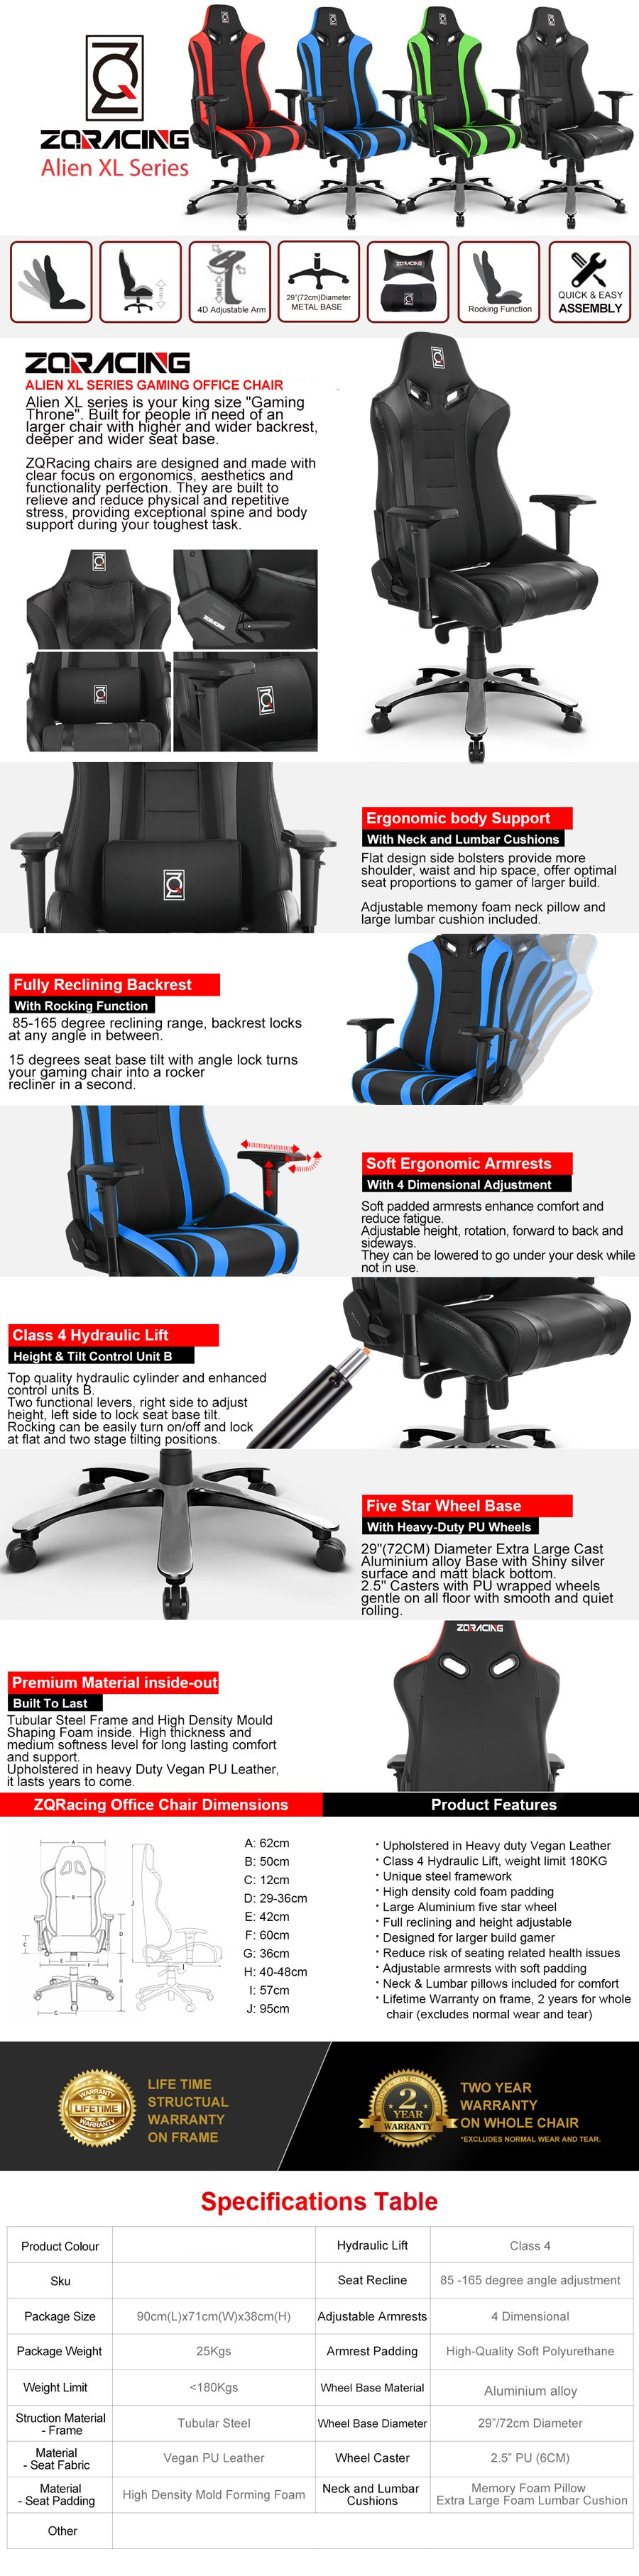 ZQRacing Alien XL Series Gaming Office Chair - Overview 1